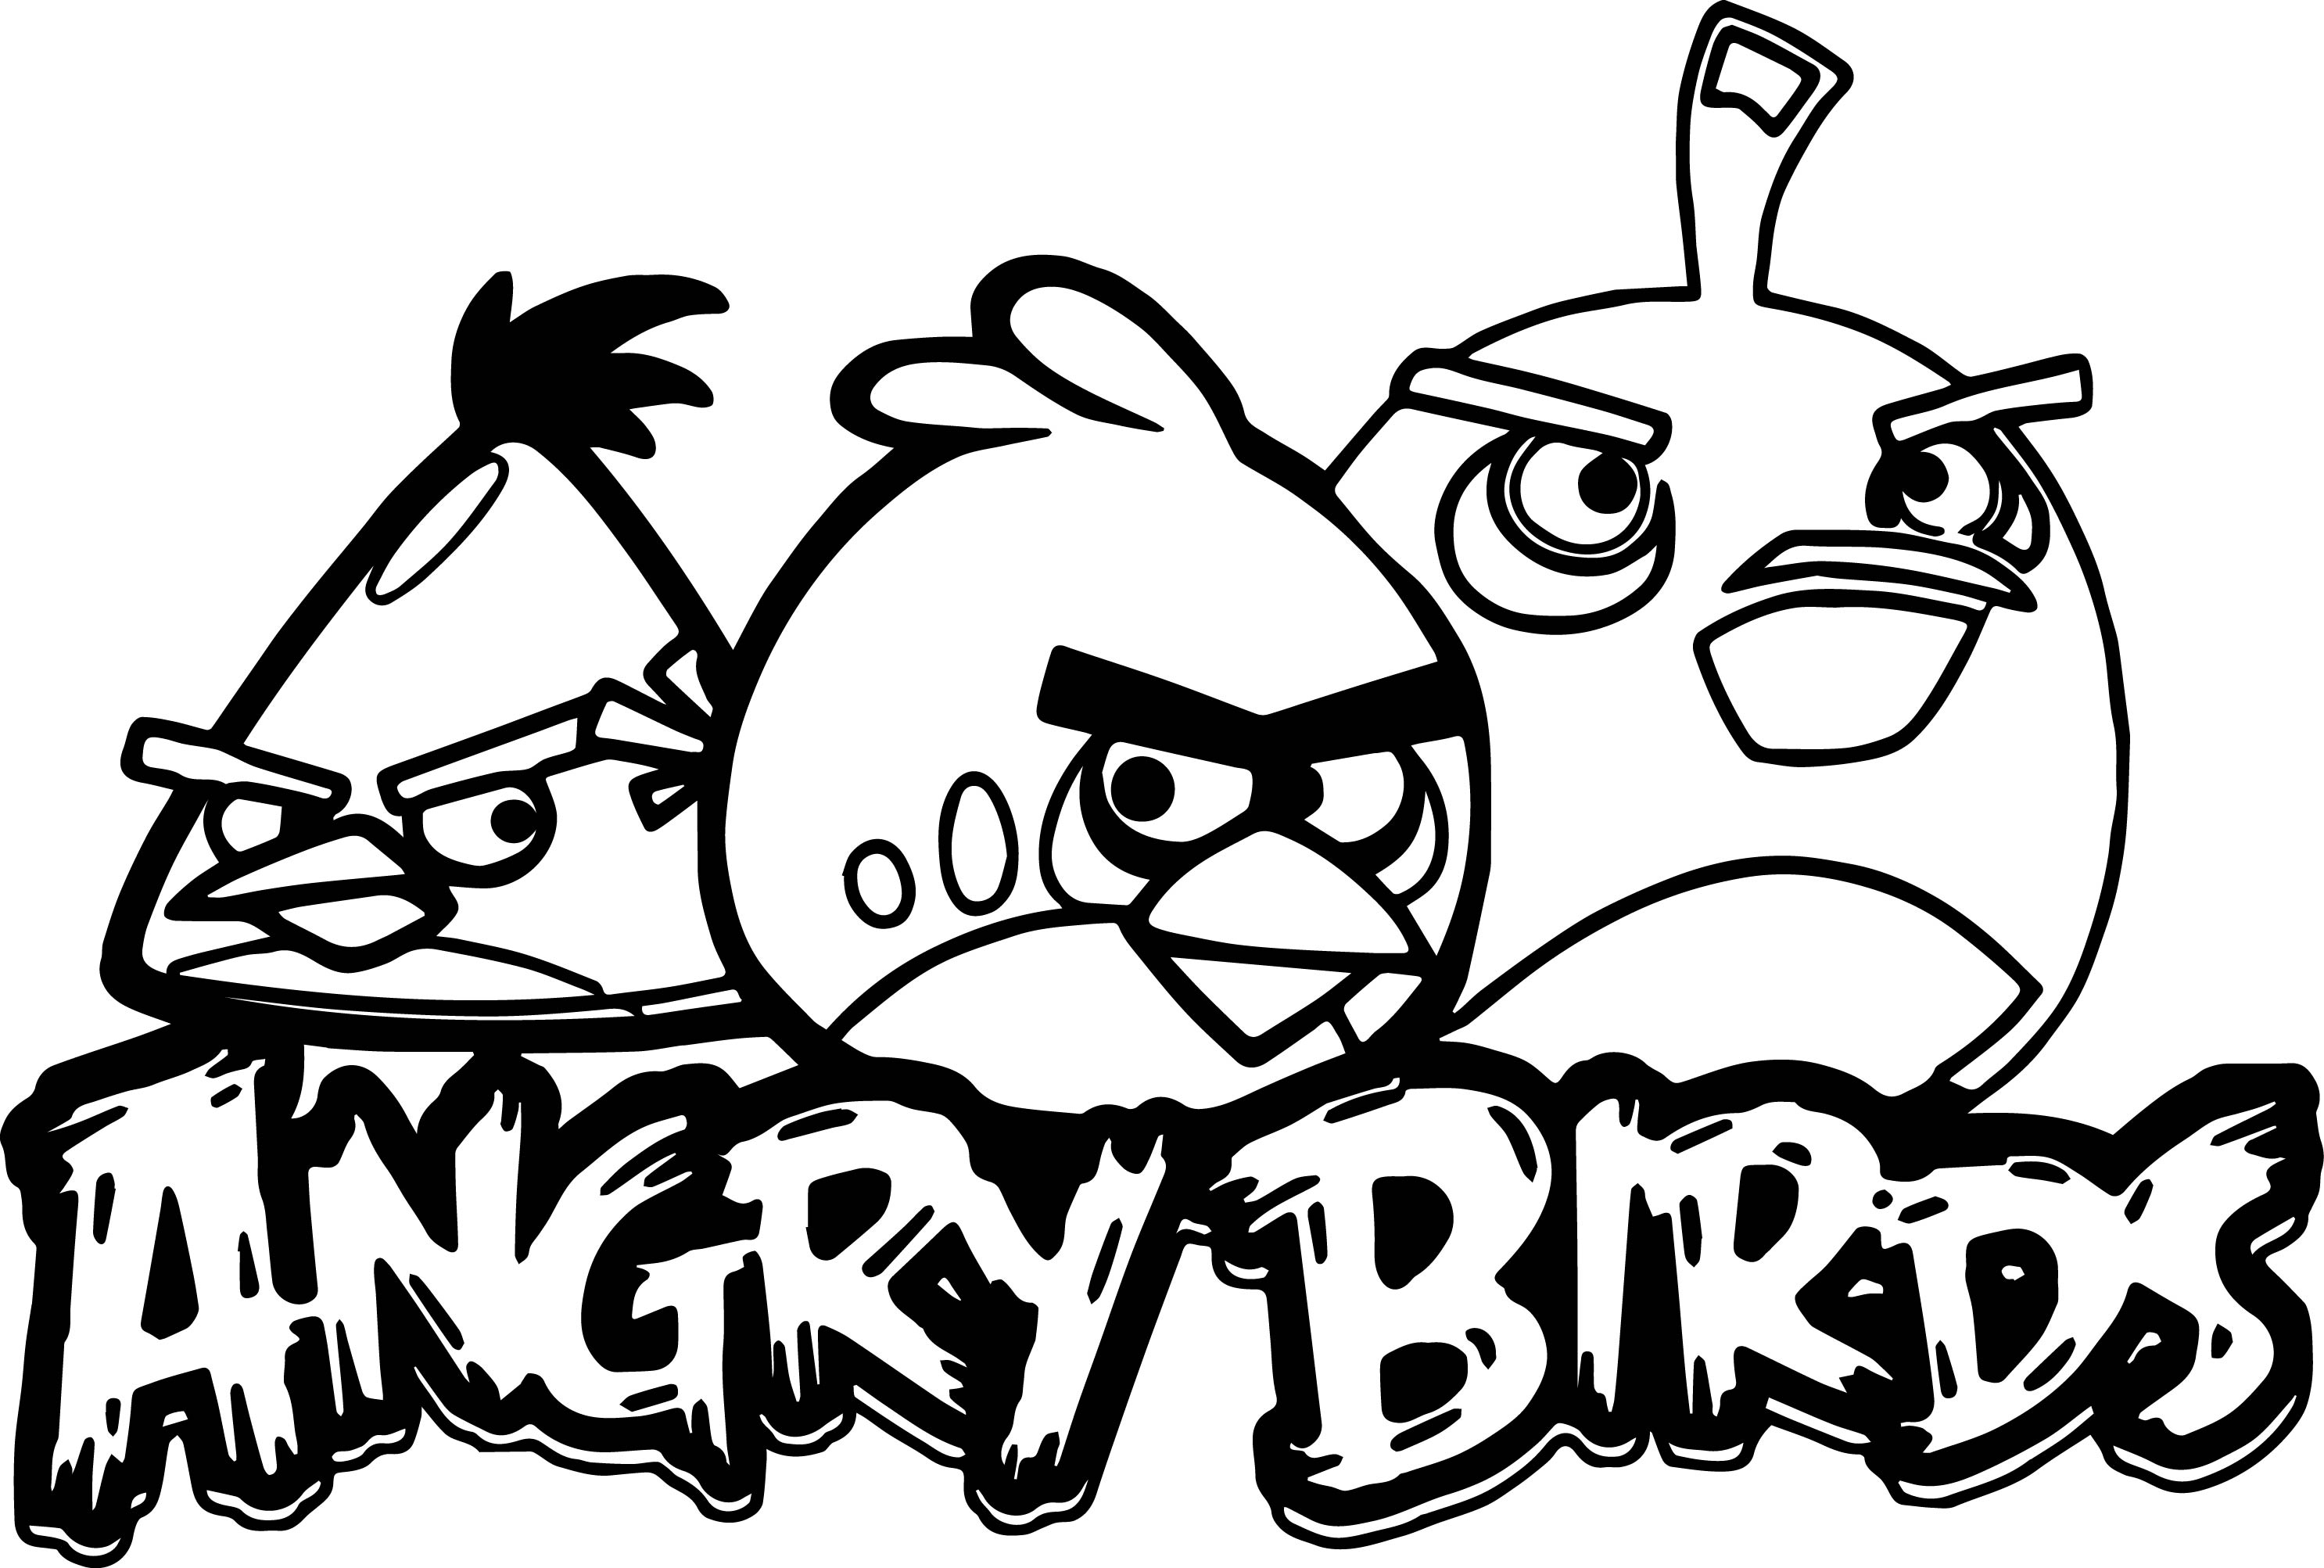 2972x2005 Printable Angry Birds Coloring Pages For Kids Coloringstar